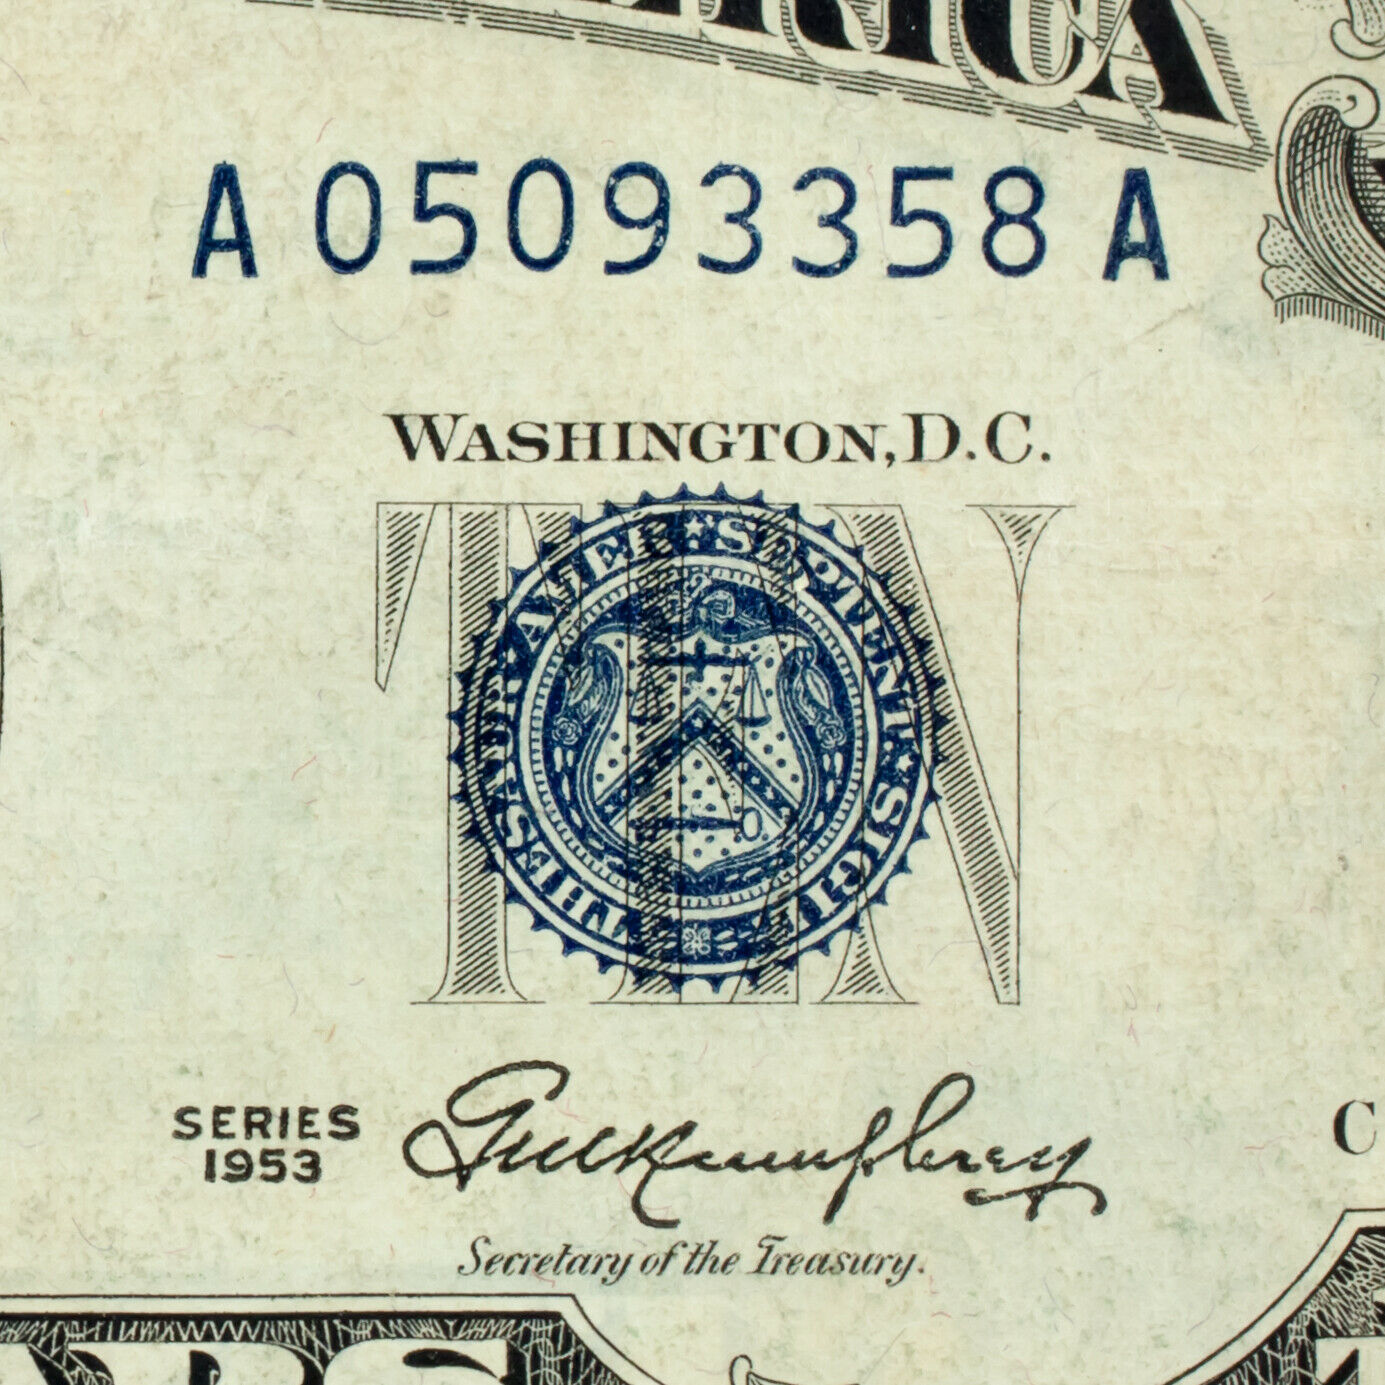 1953 United States Silver Certificate in Very Fine Condition Fr #1706